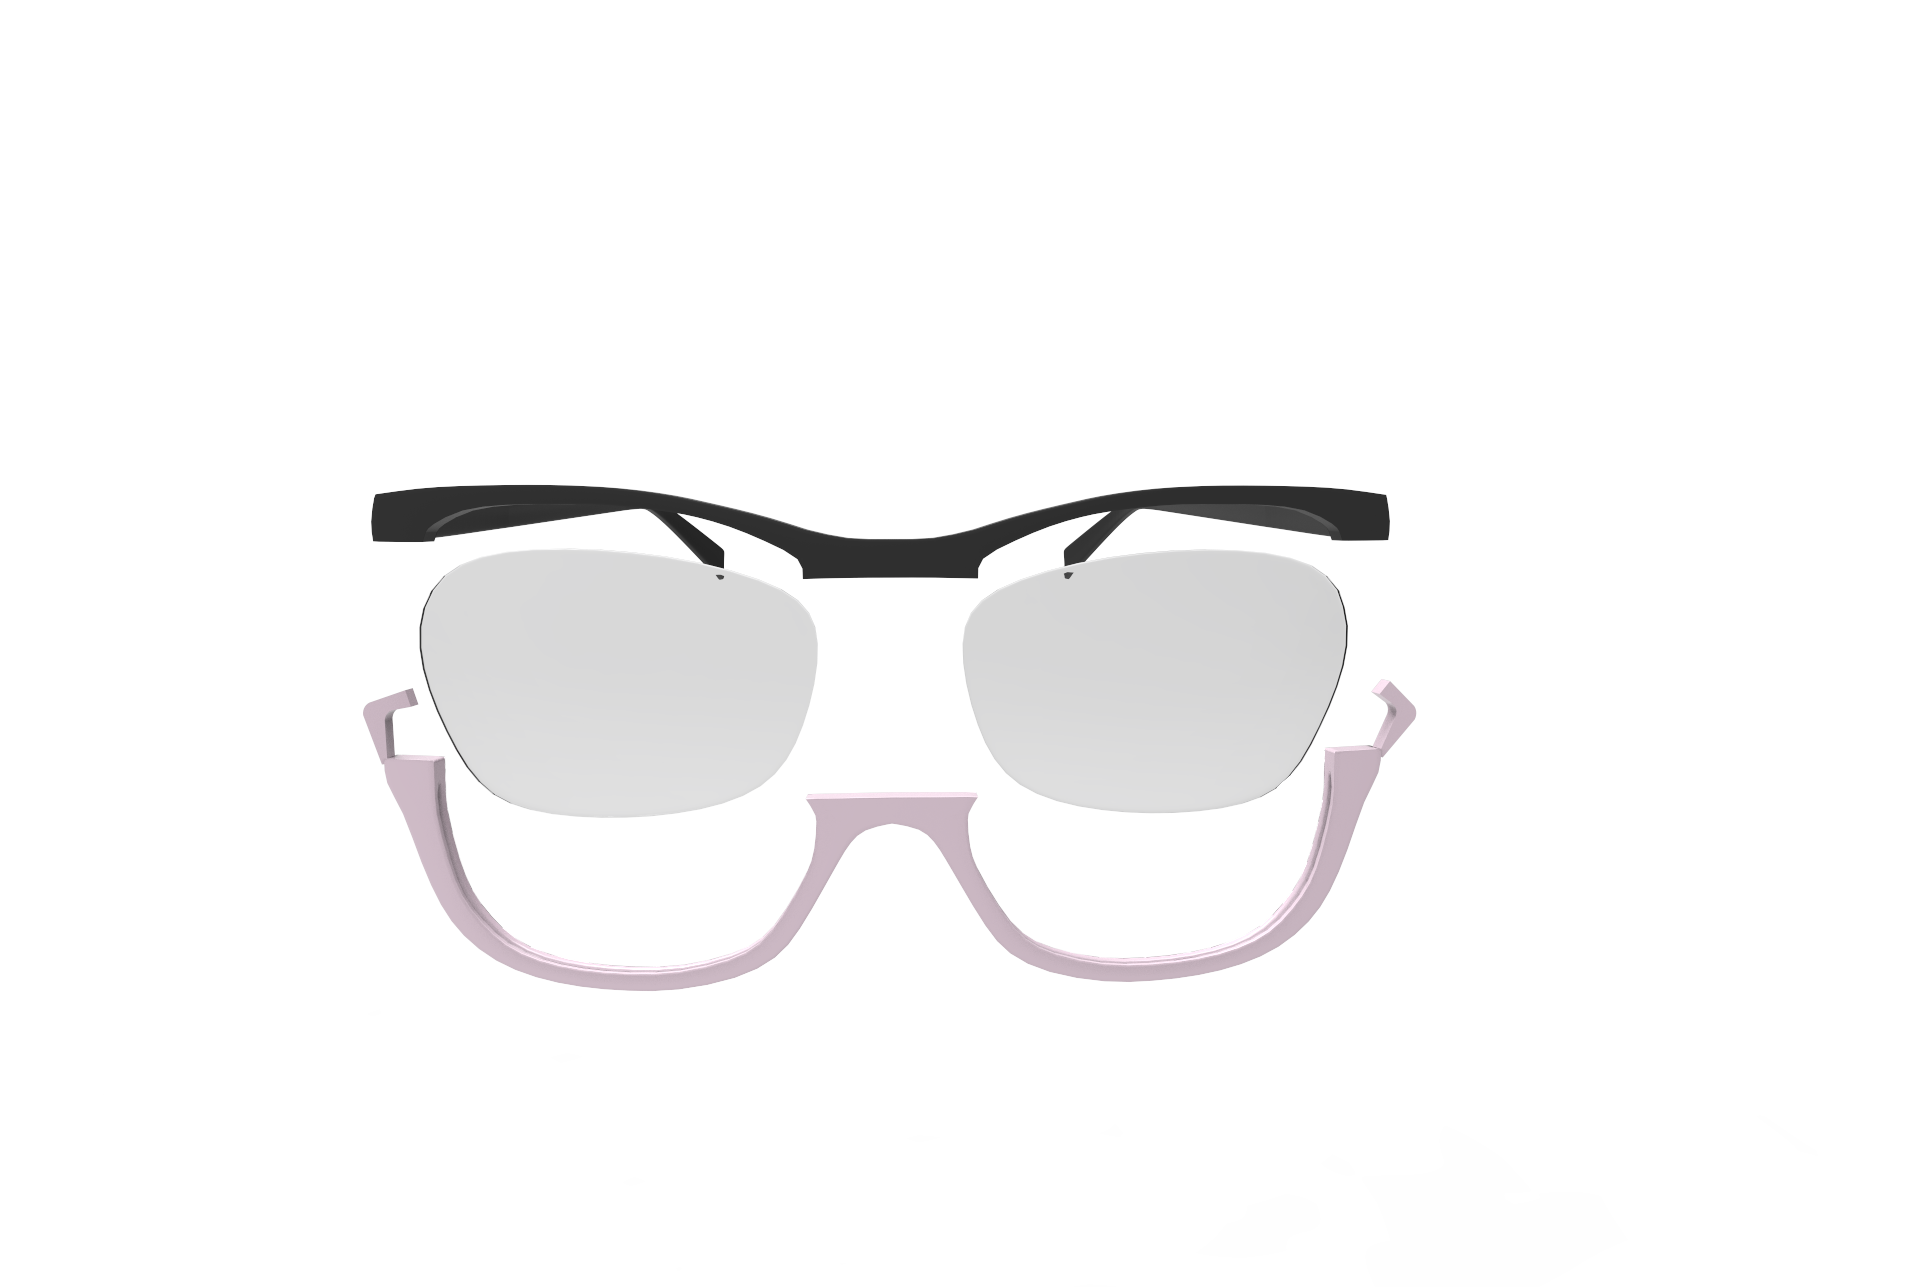 Glasses Frames With Removable Arms : World Patent Marketing Invention Breaks The Mousy, Nerdy ...